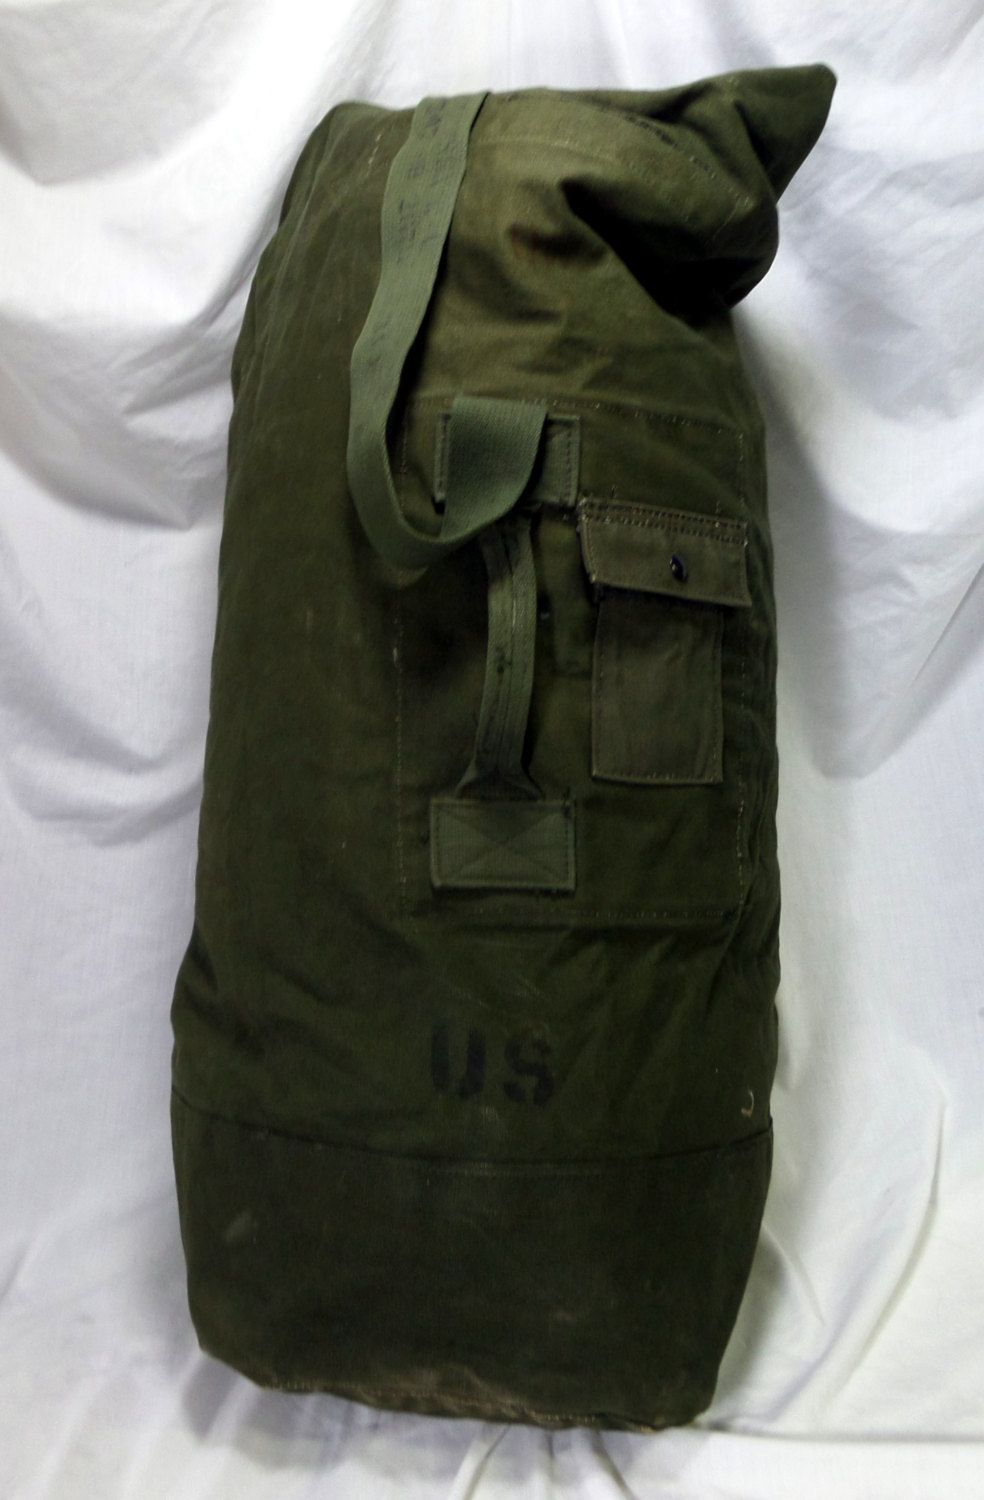 Vintage U.S. Army Duffle Bag - Vintage Army Bag - Genuine Canvas US Surplus Army  Bag - Vietnam Eta by AmalgamationCapital on Etsy a38f33c8a06